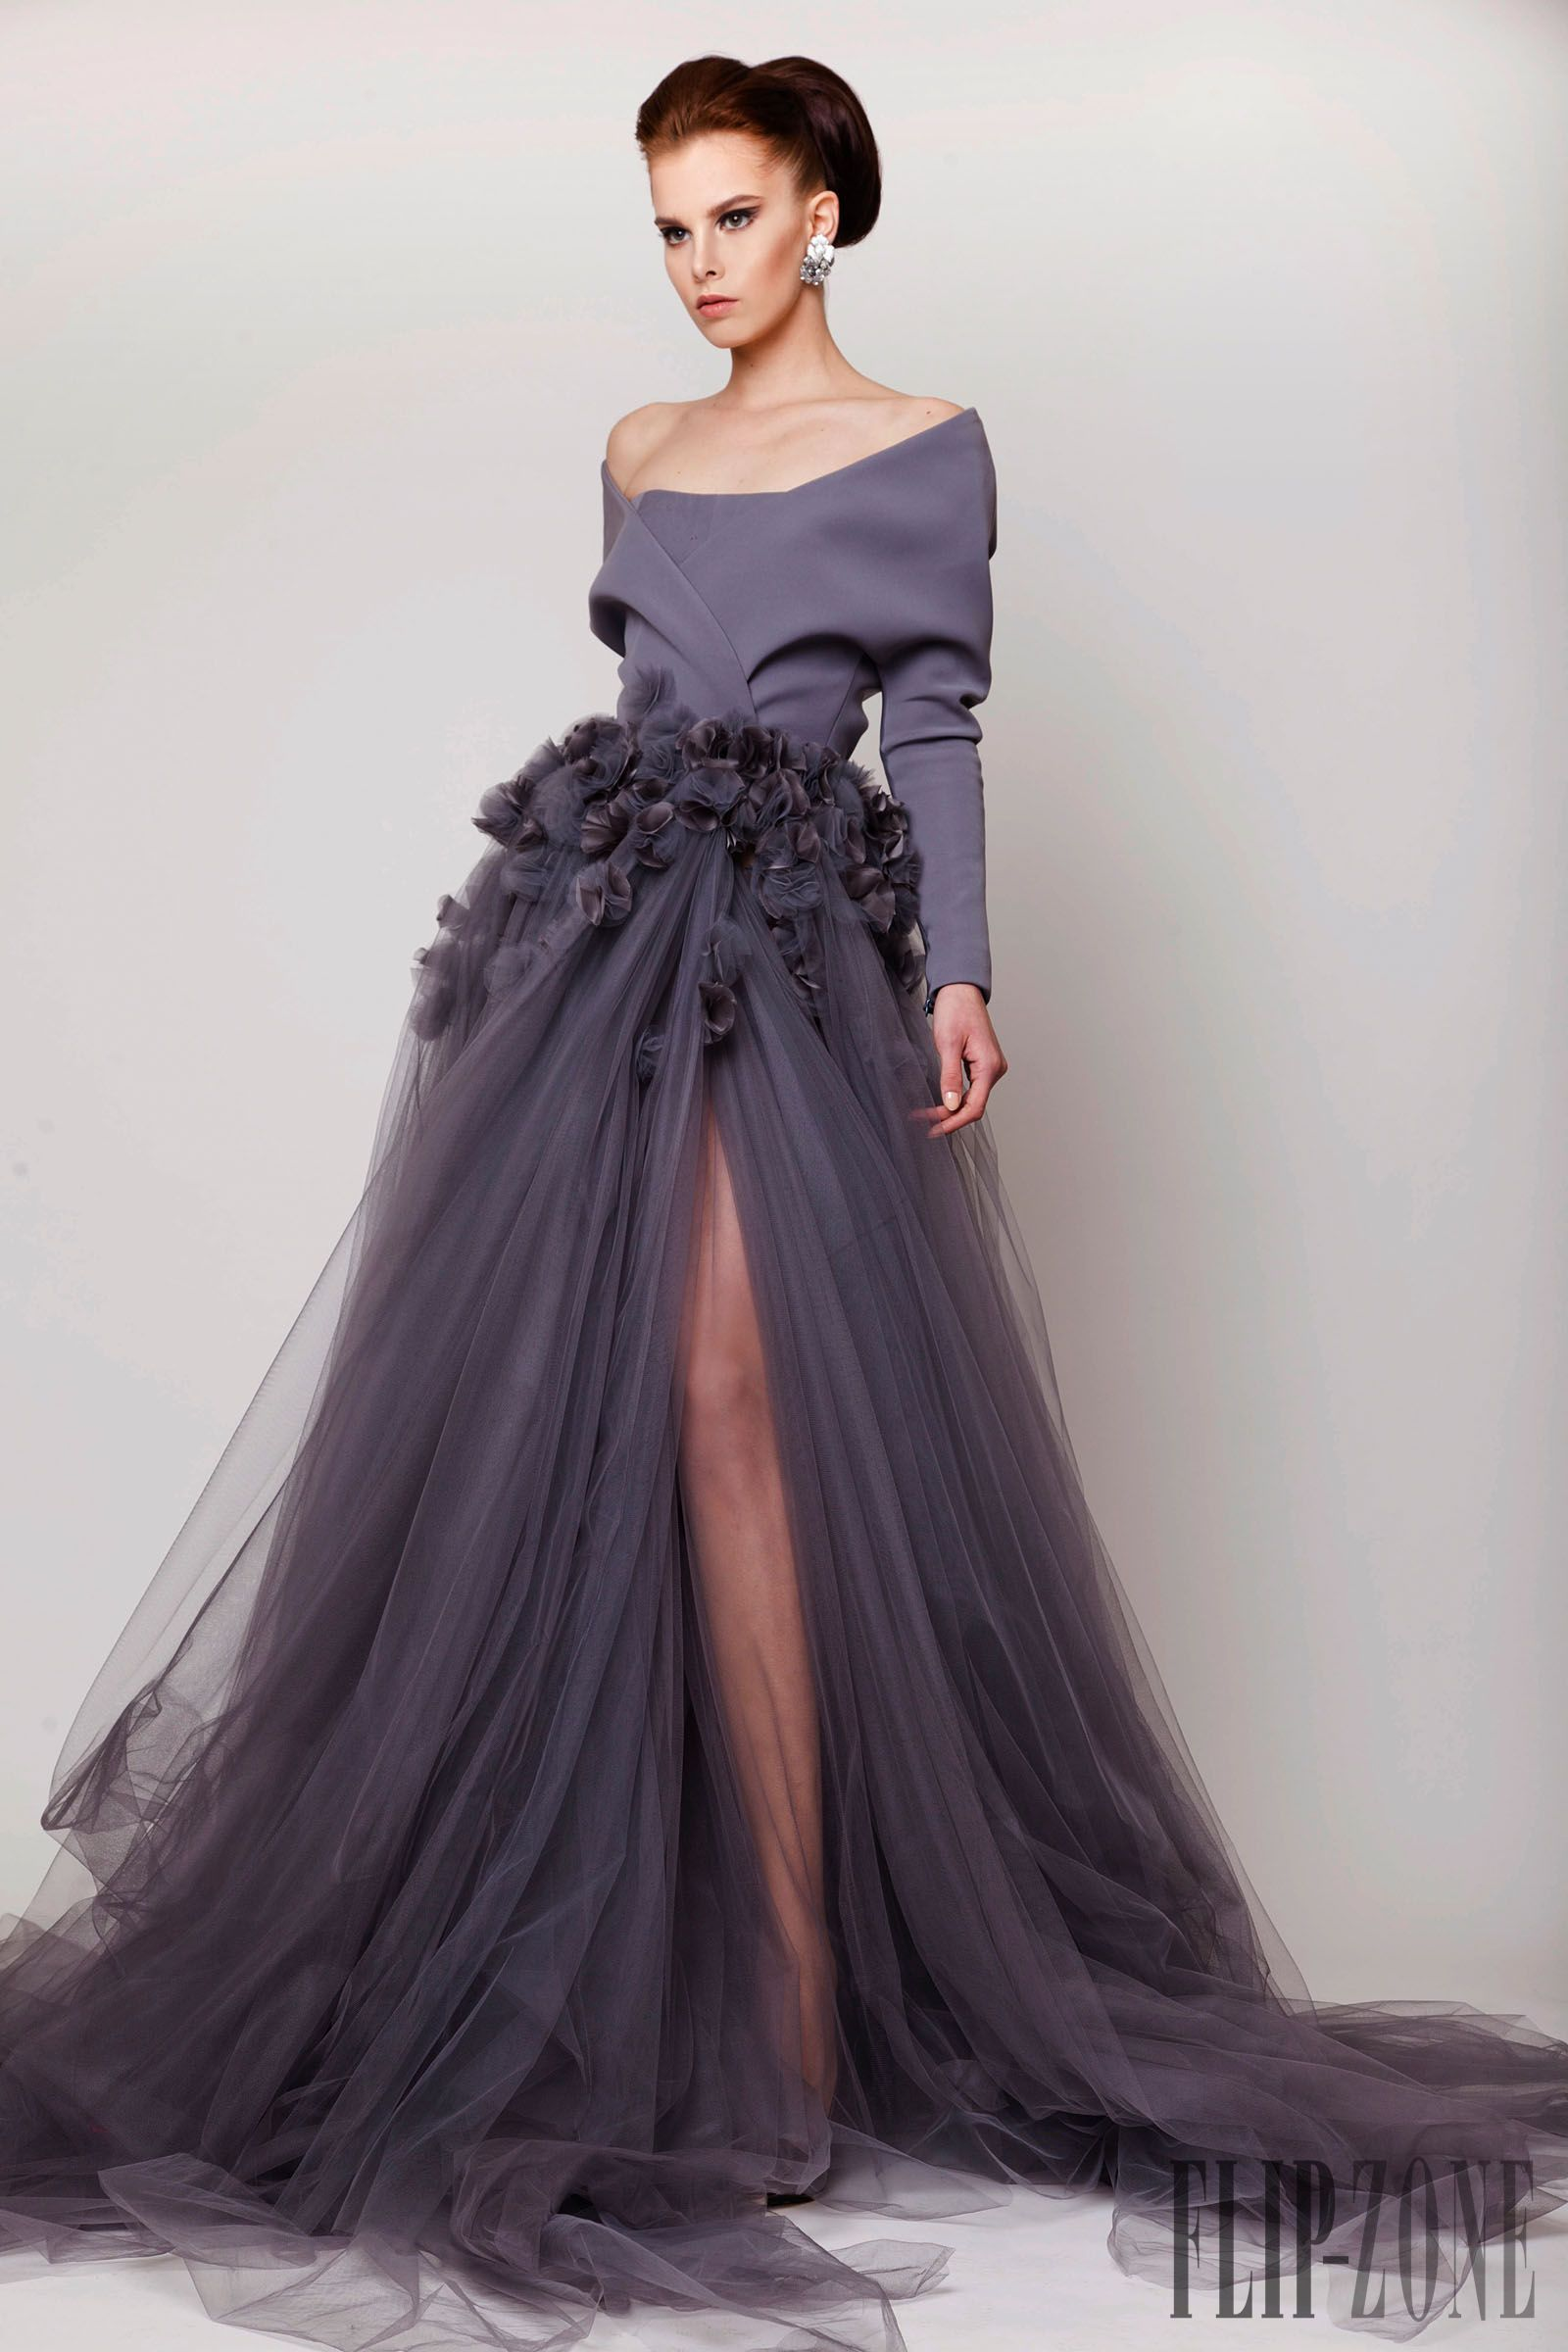 Azzi & Osta Spring-summer 2015 - Couture | EVENING DRESSES ...